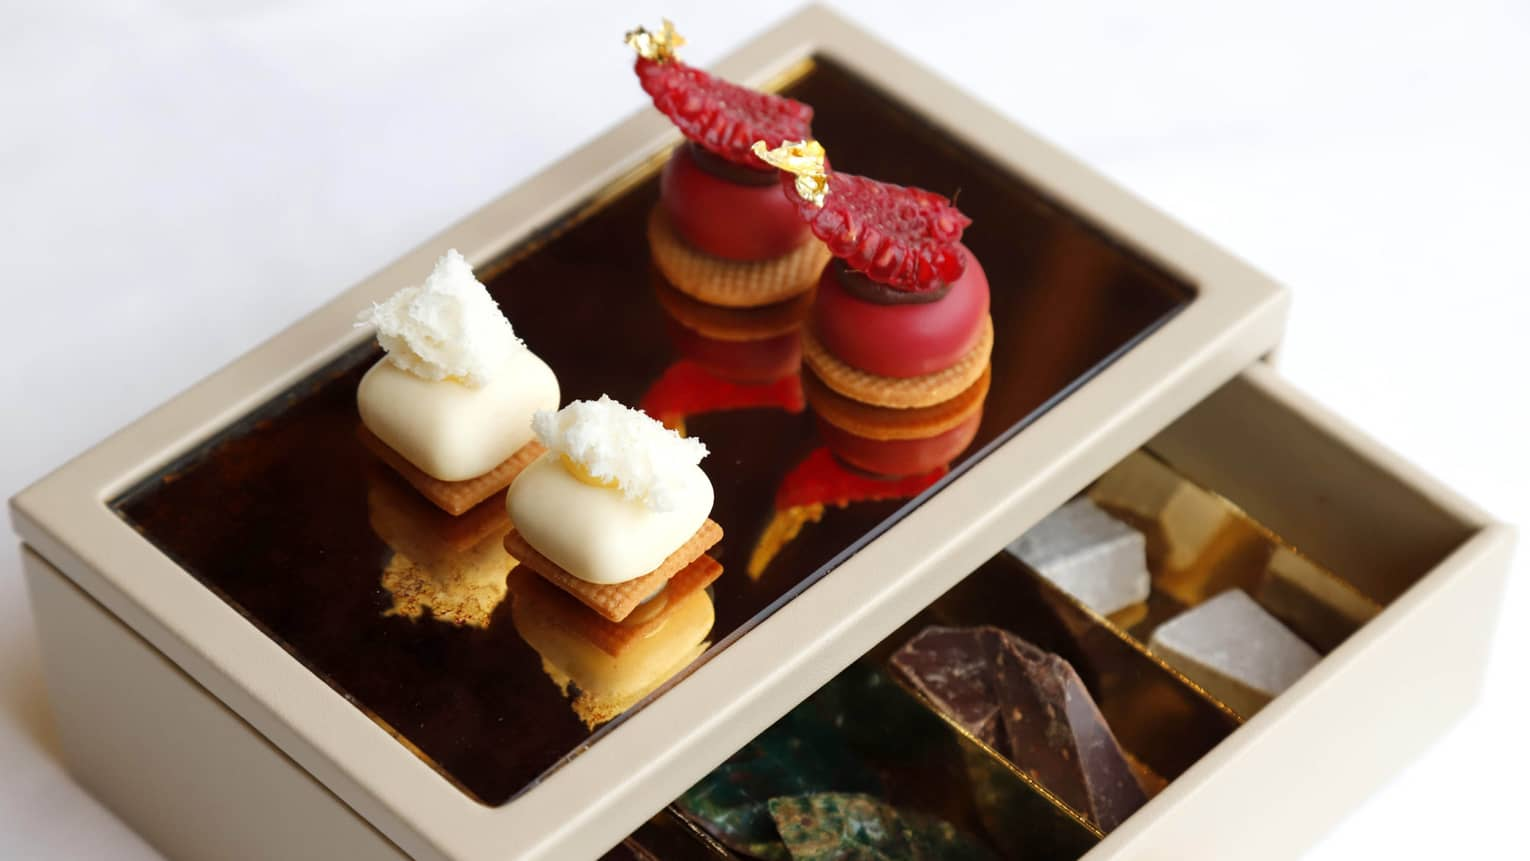 Assorted Mignon Pastries on white box with open drawer revealing chocolate, candies